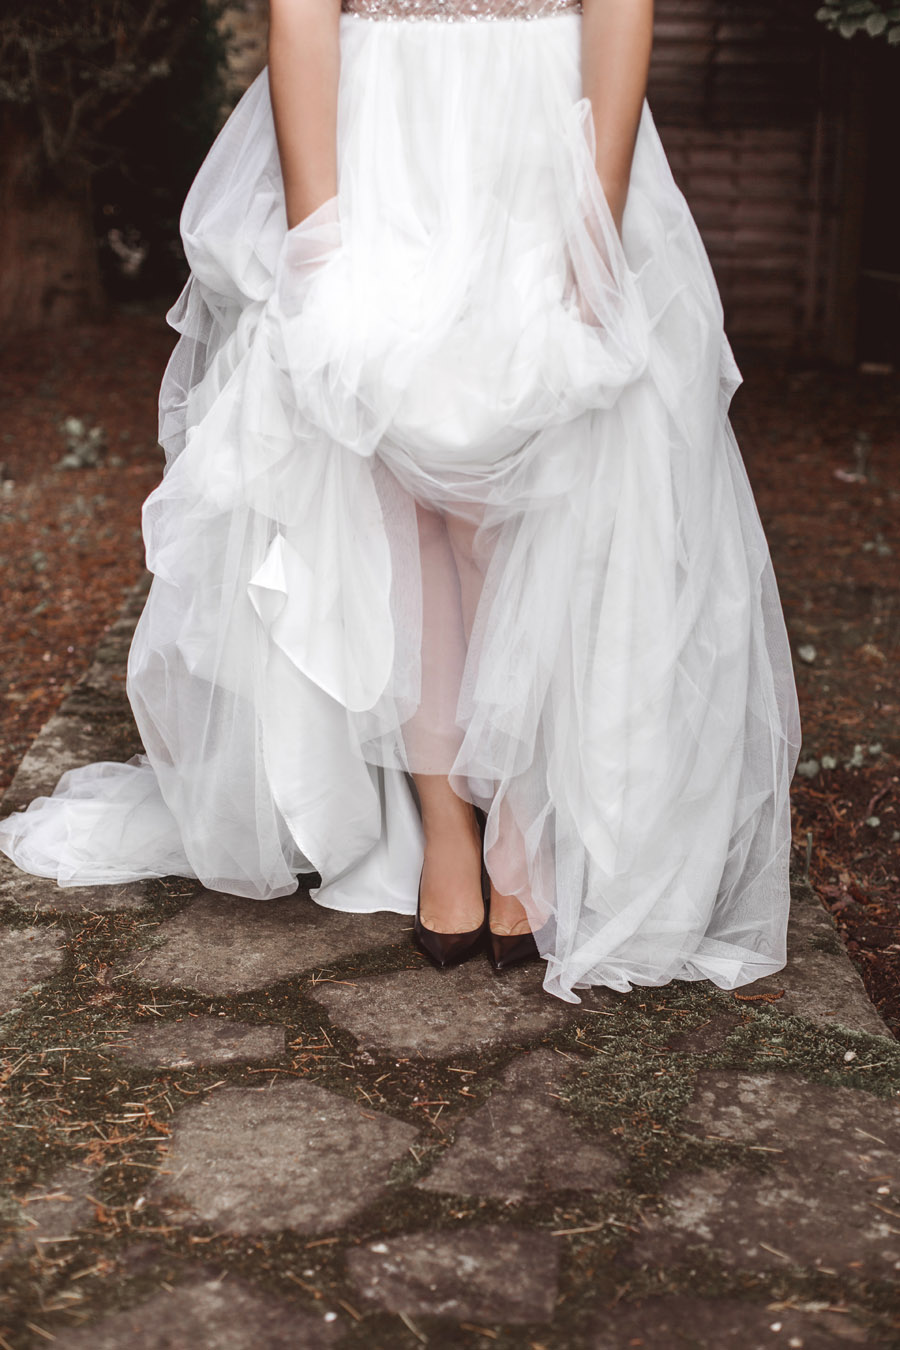 Ye Olde Bell Coaching Inn for a faded beauty wedding style edit with Masha Unwerth (19)